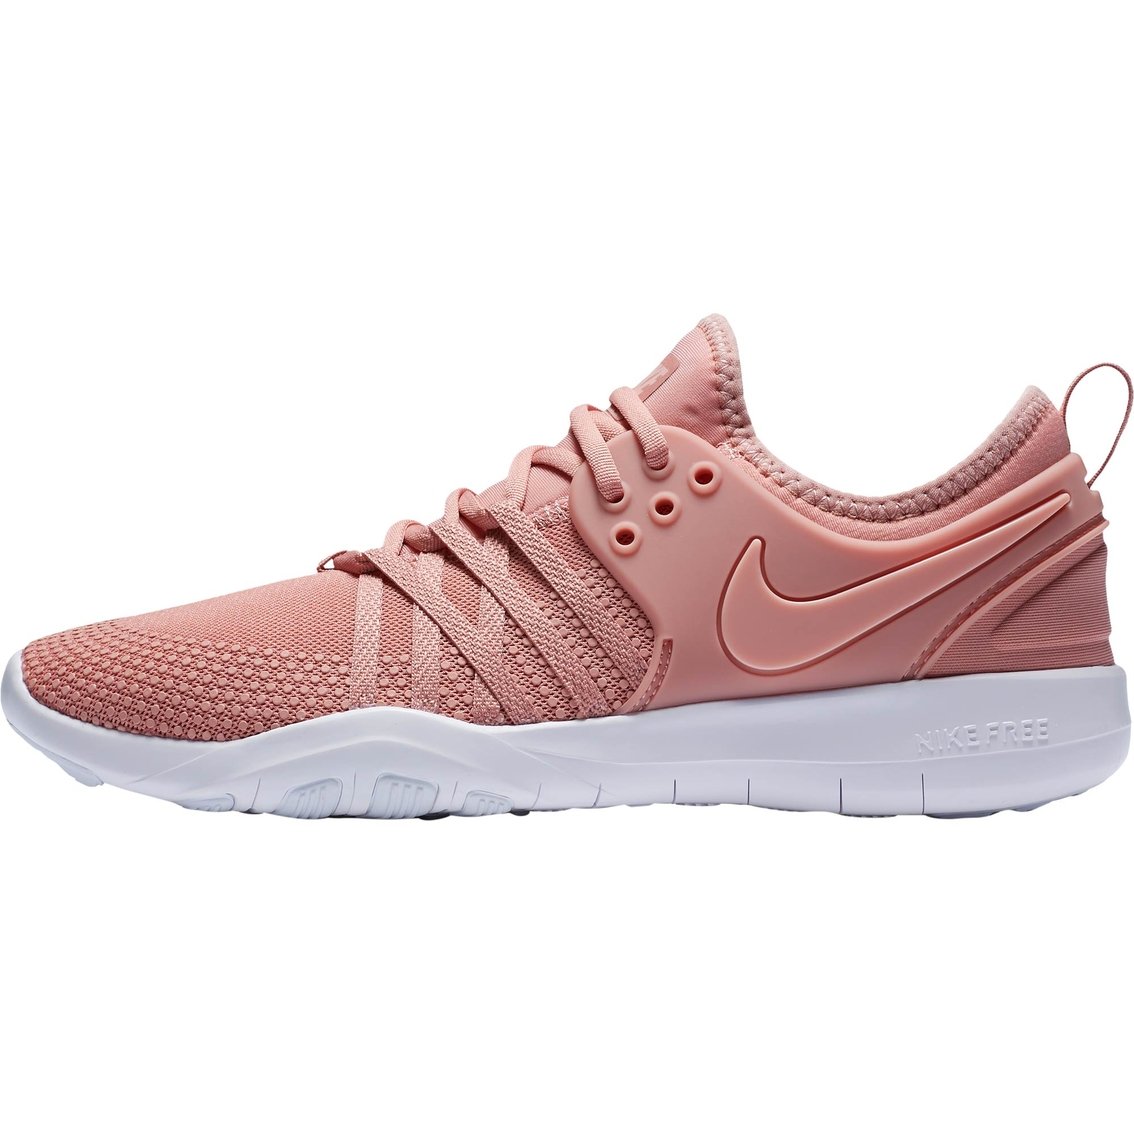 c898aebb2d5a Nike Women s Free Tr7 Amp Training Shoes